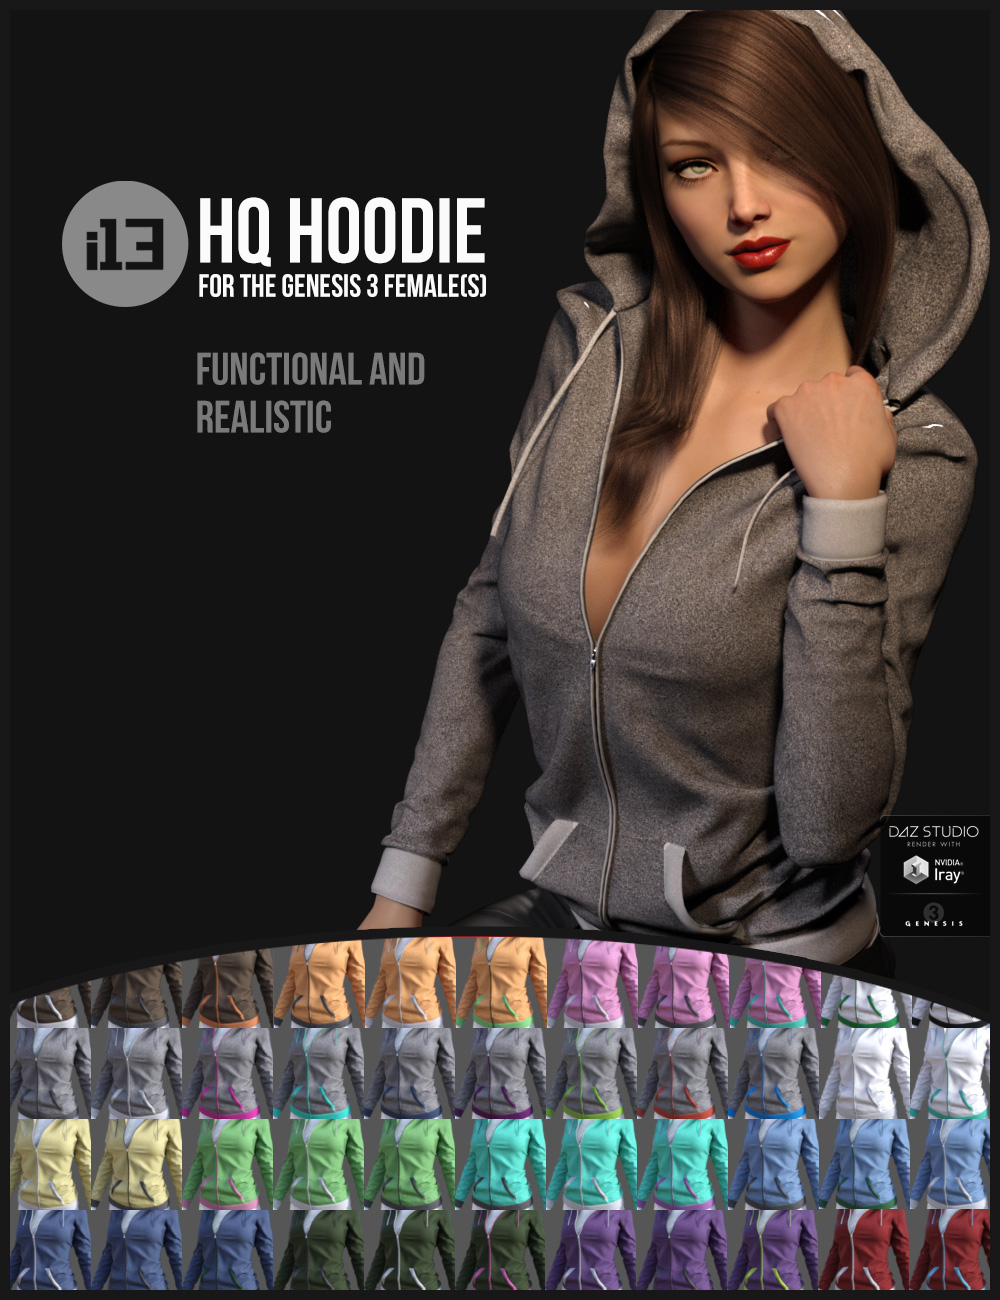 i13 HQ Hoodie for the Genesis 3 Female(s) by: ironman13, 3D Models by Daz 3D